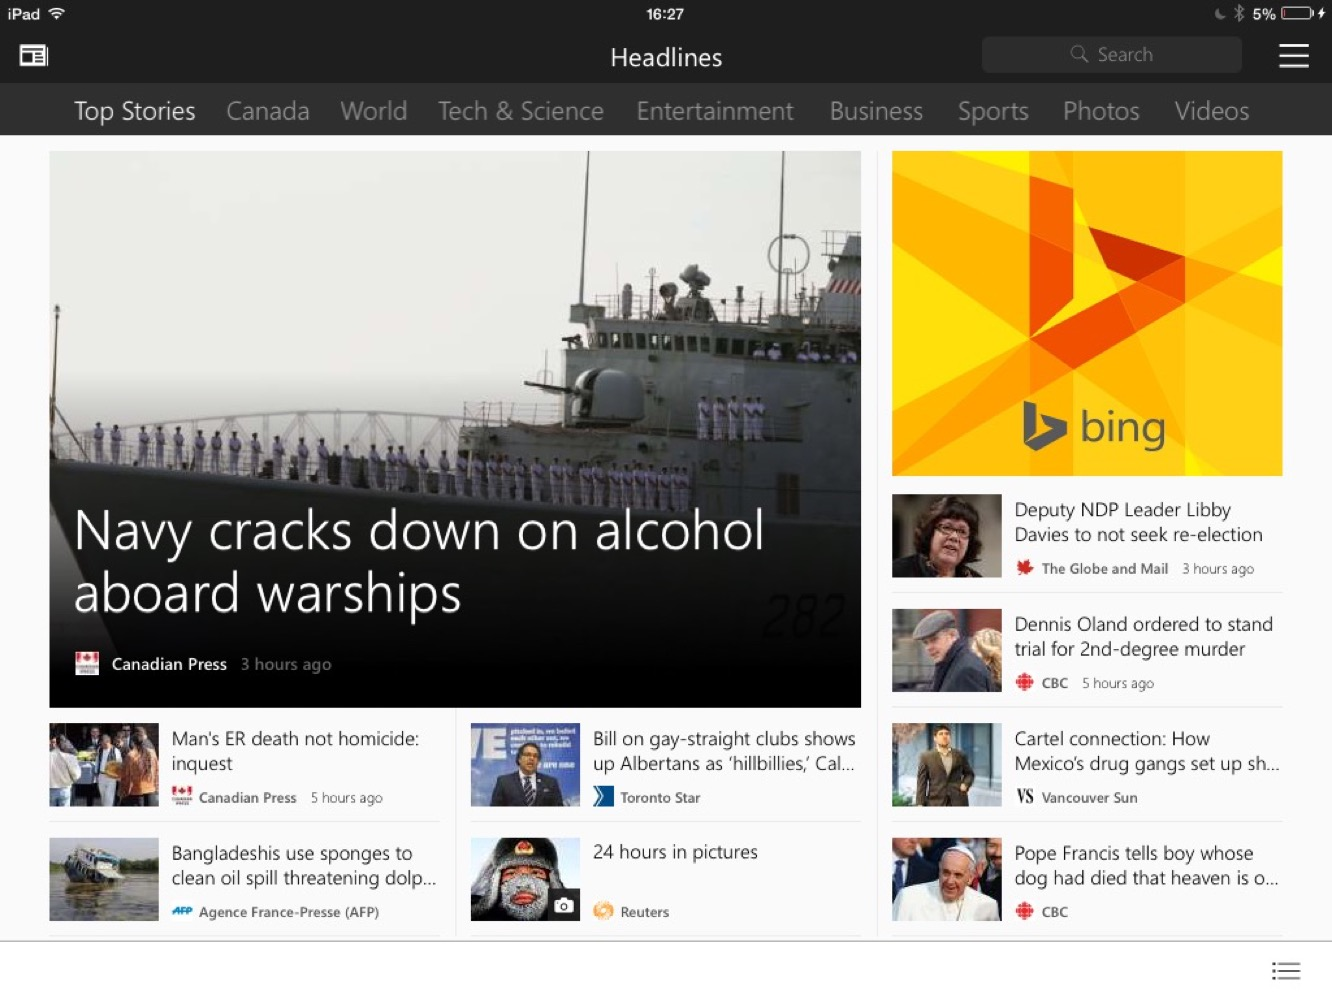 apps msn news News: Apps of the Week: Microsoft's MSN apps